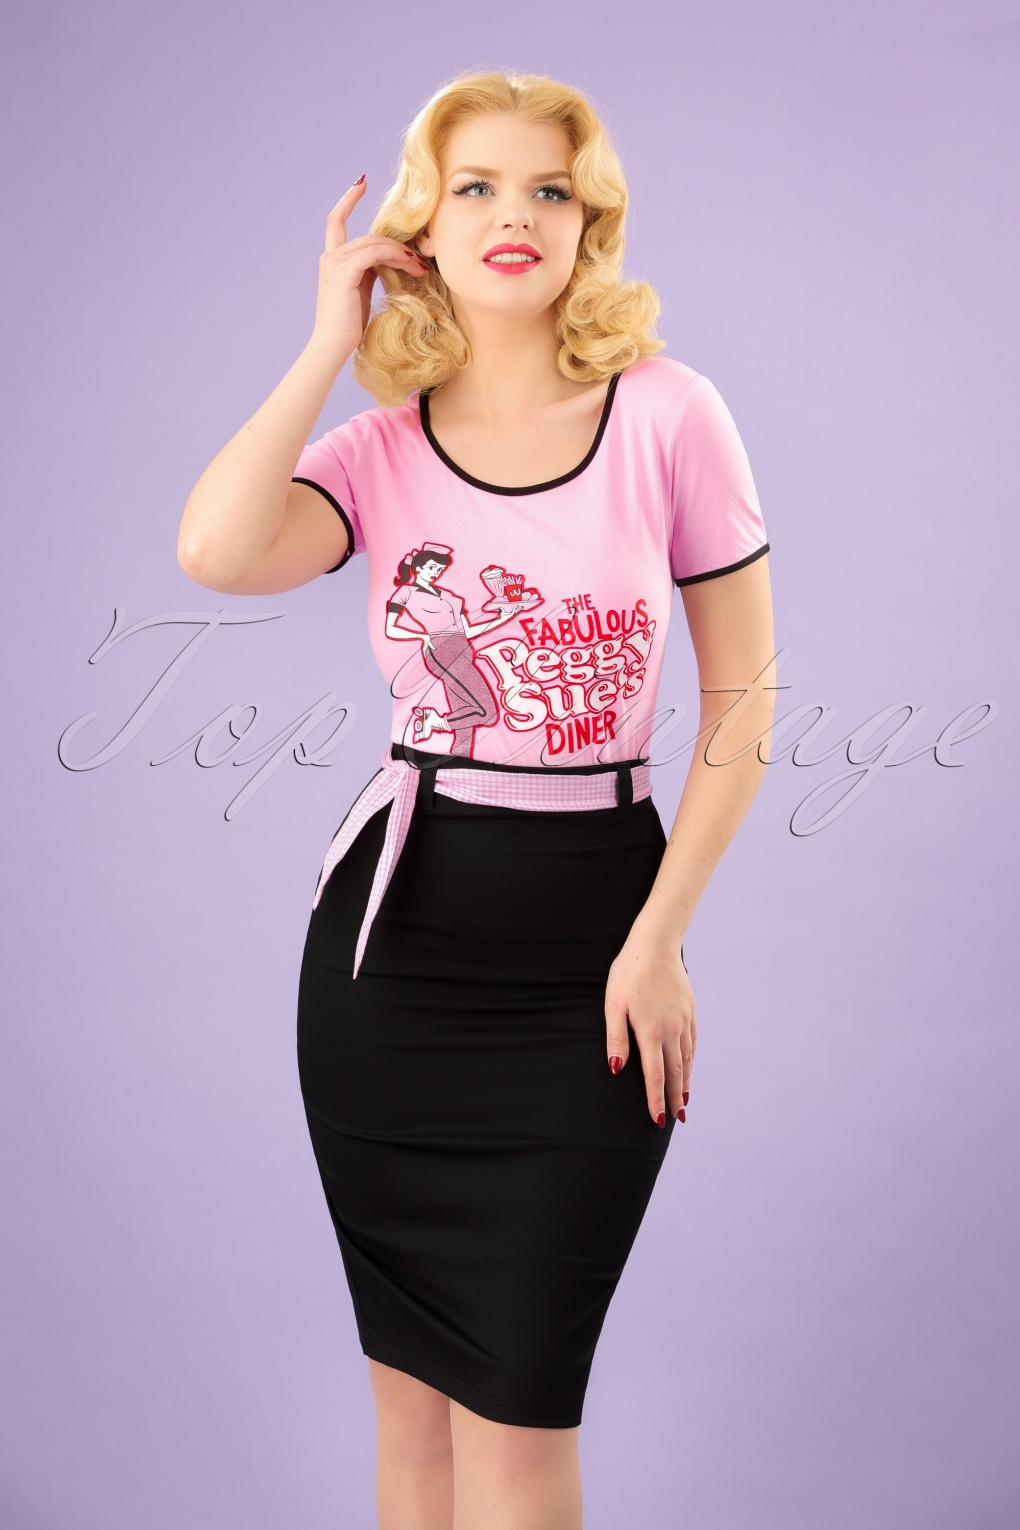 Retro Skirts: Vintage, Pencil, Circle, & Plus Sizes 50s Grease Pencil Skirt in Black and Pink £33.53 AT vintagedancer.com